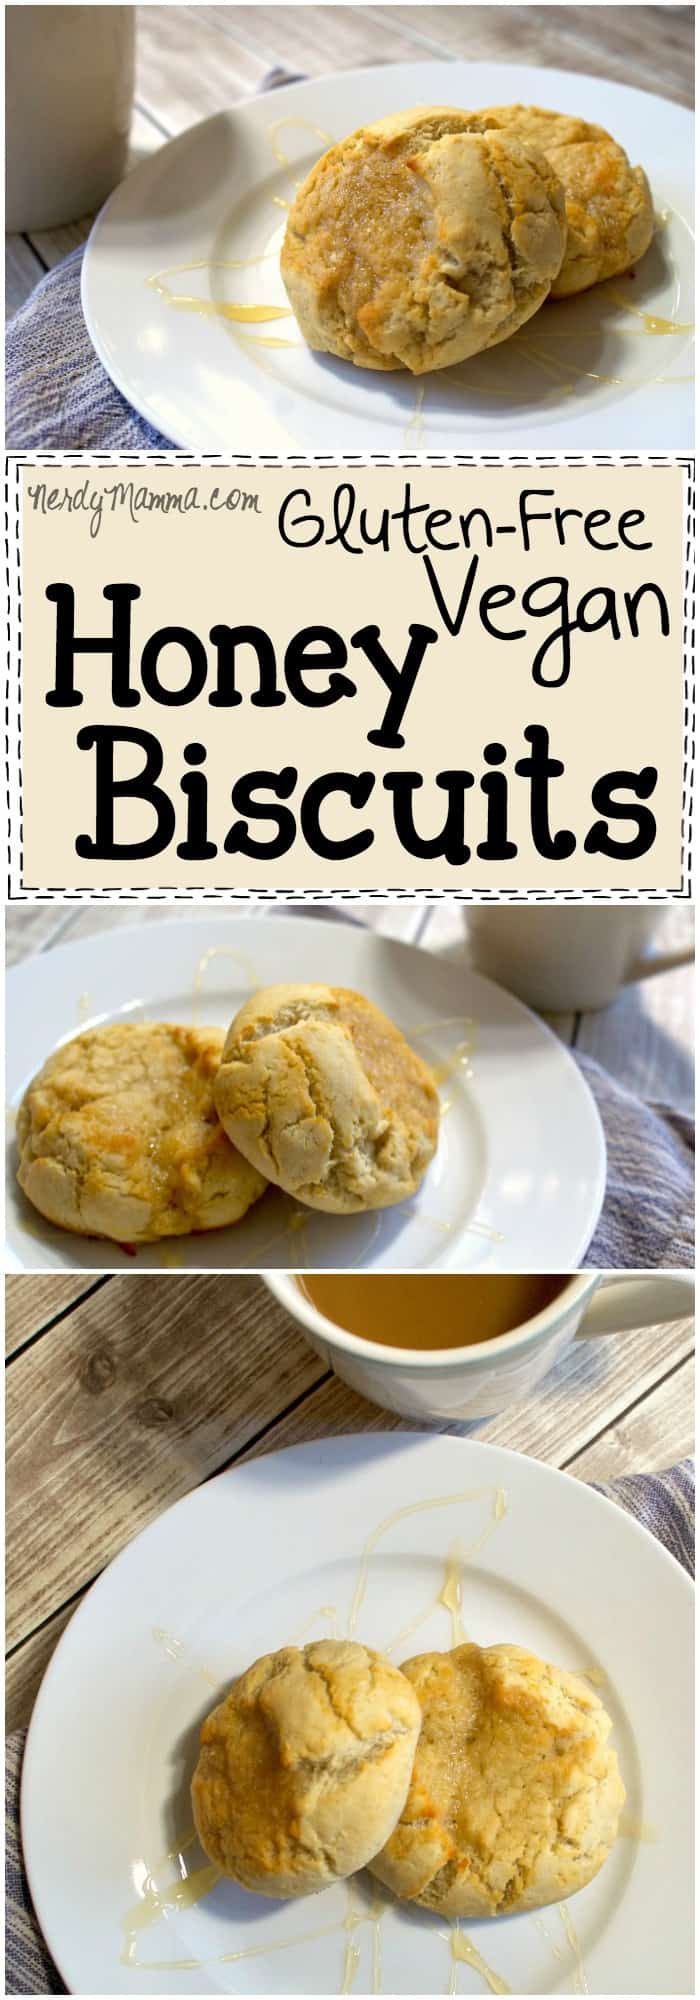 vegan honey biscuits is SO AWESOME. It looks so easy and the biscuits ...